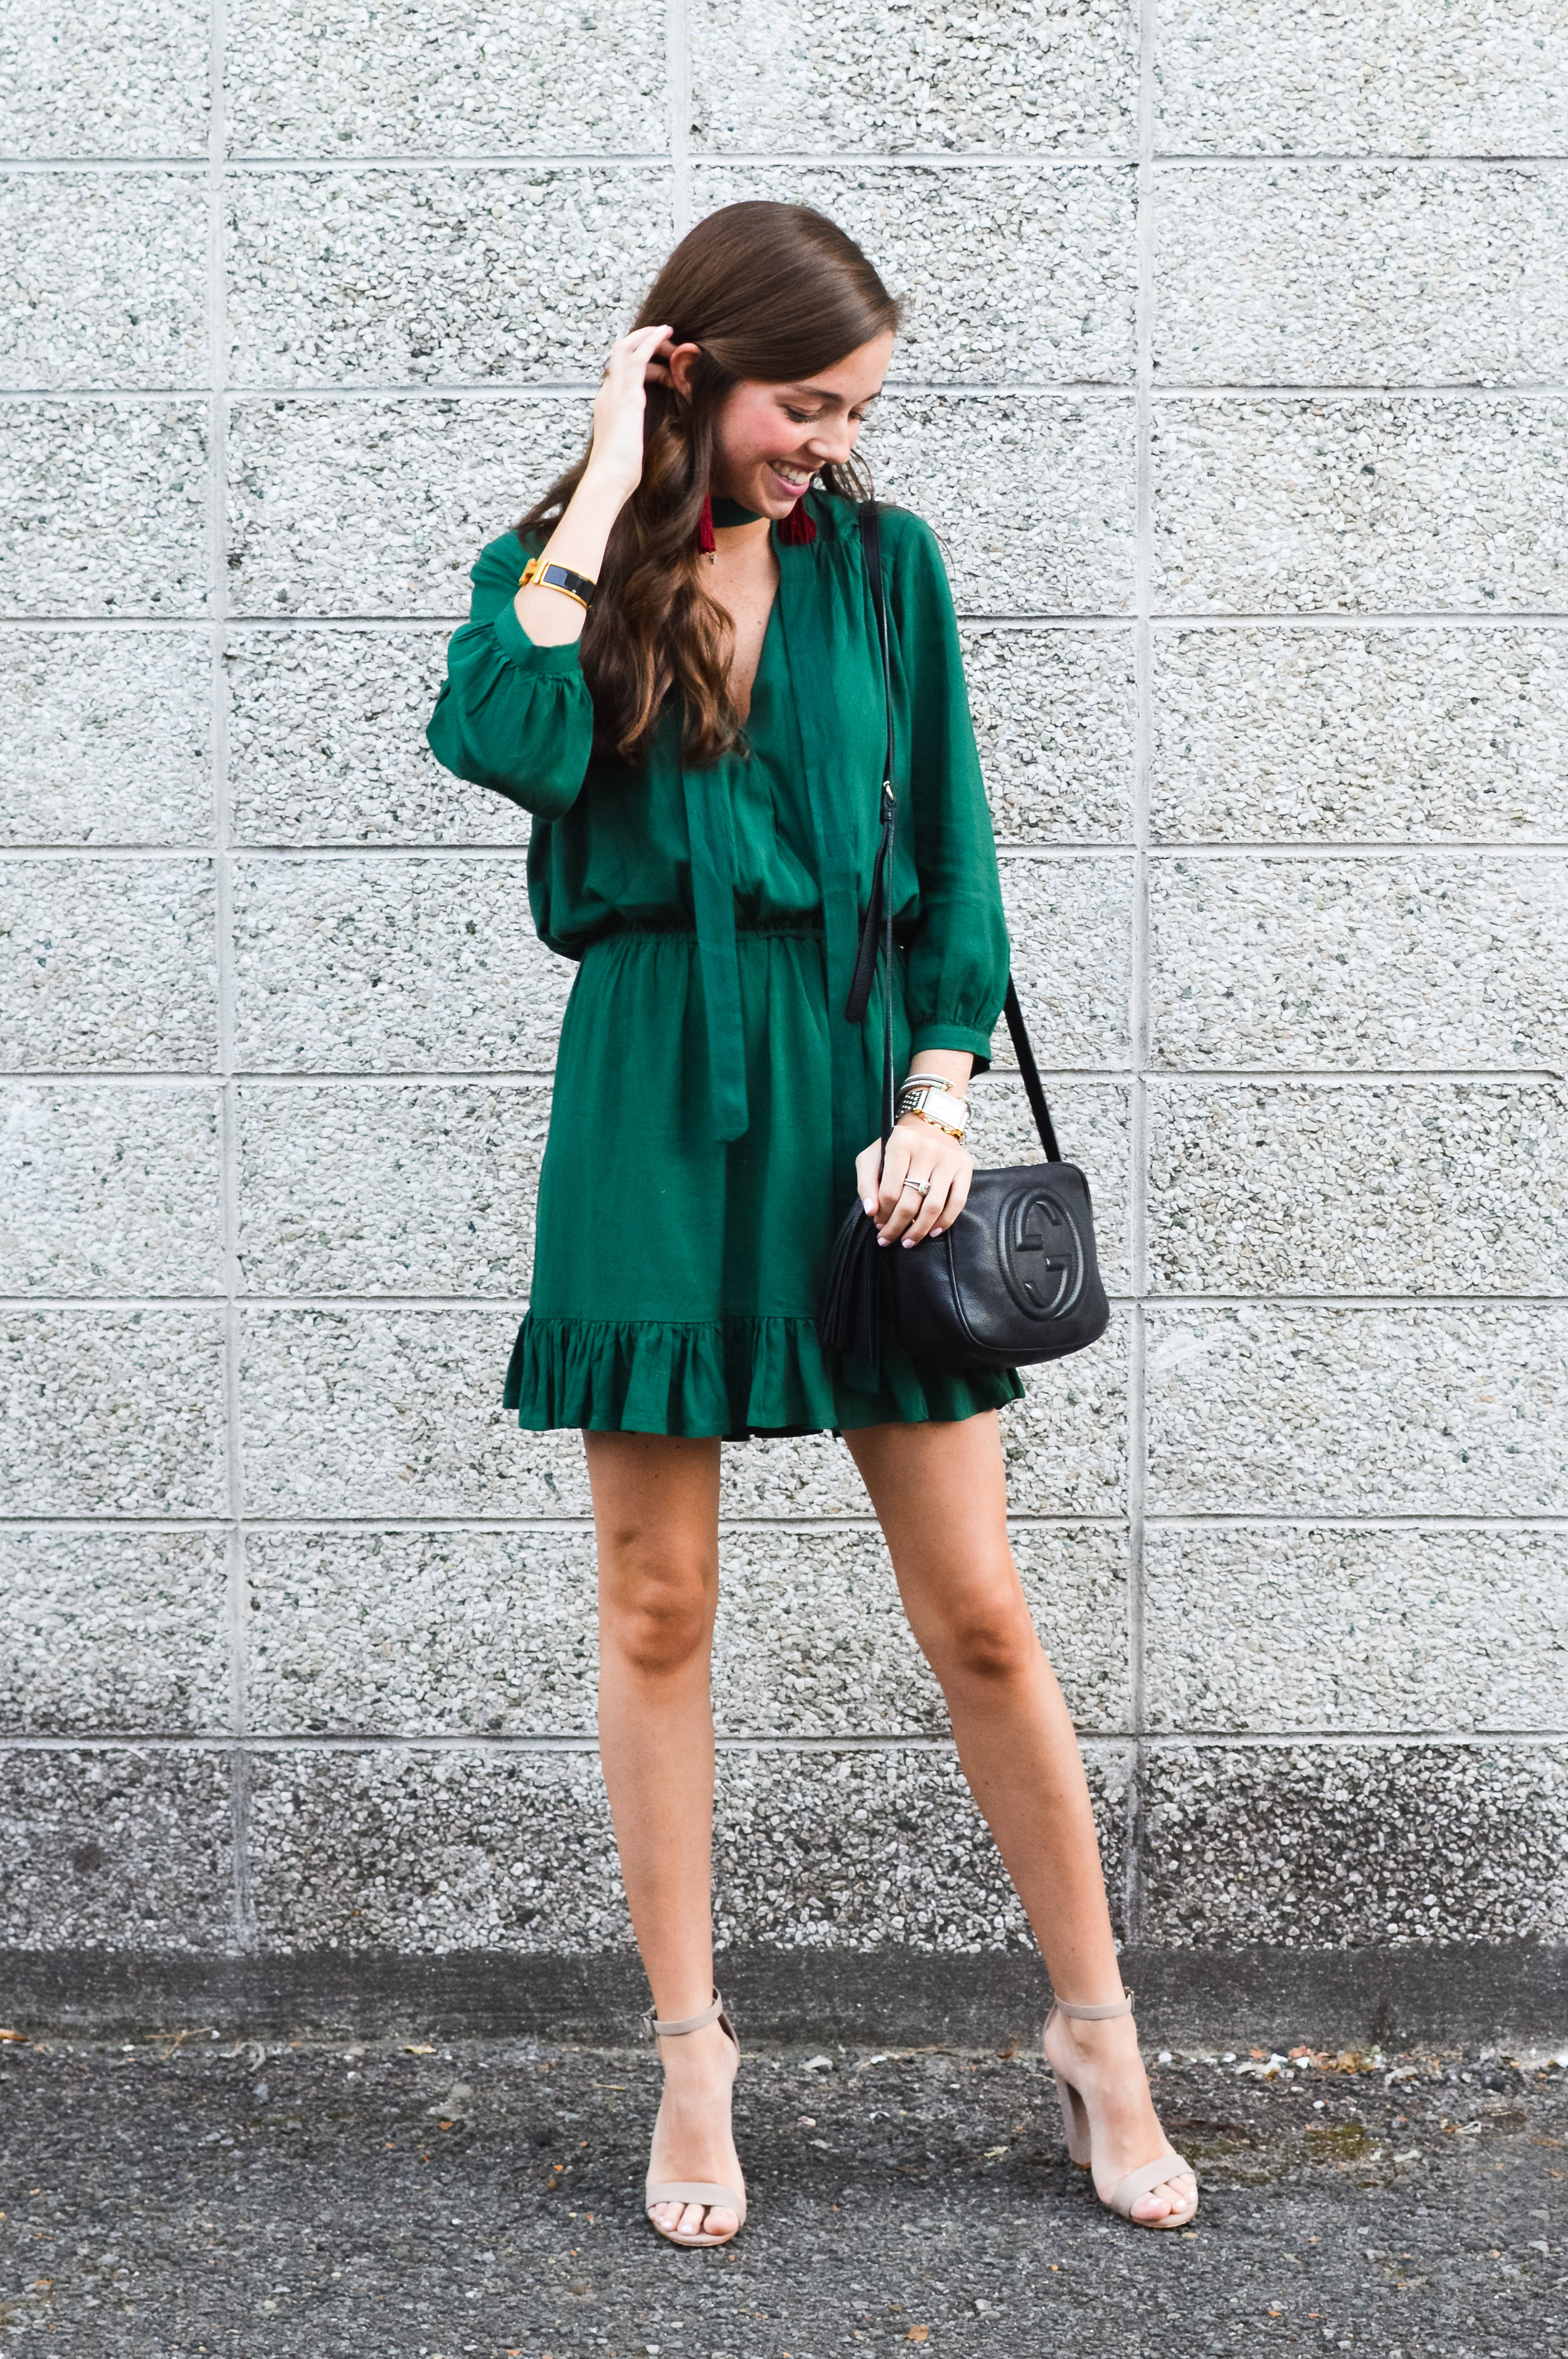 fashion blogger lcb style green dress tassel earring  (1 of 30).jpg